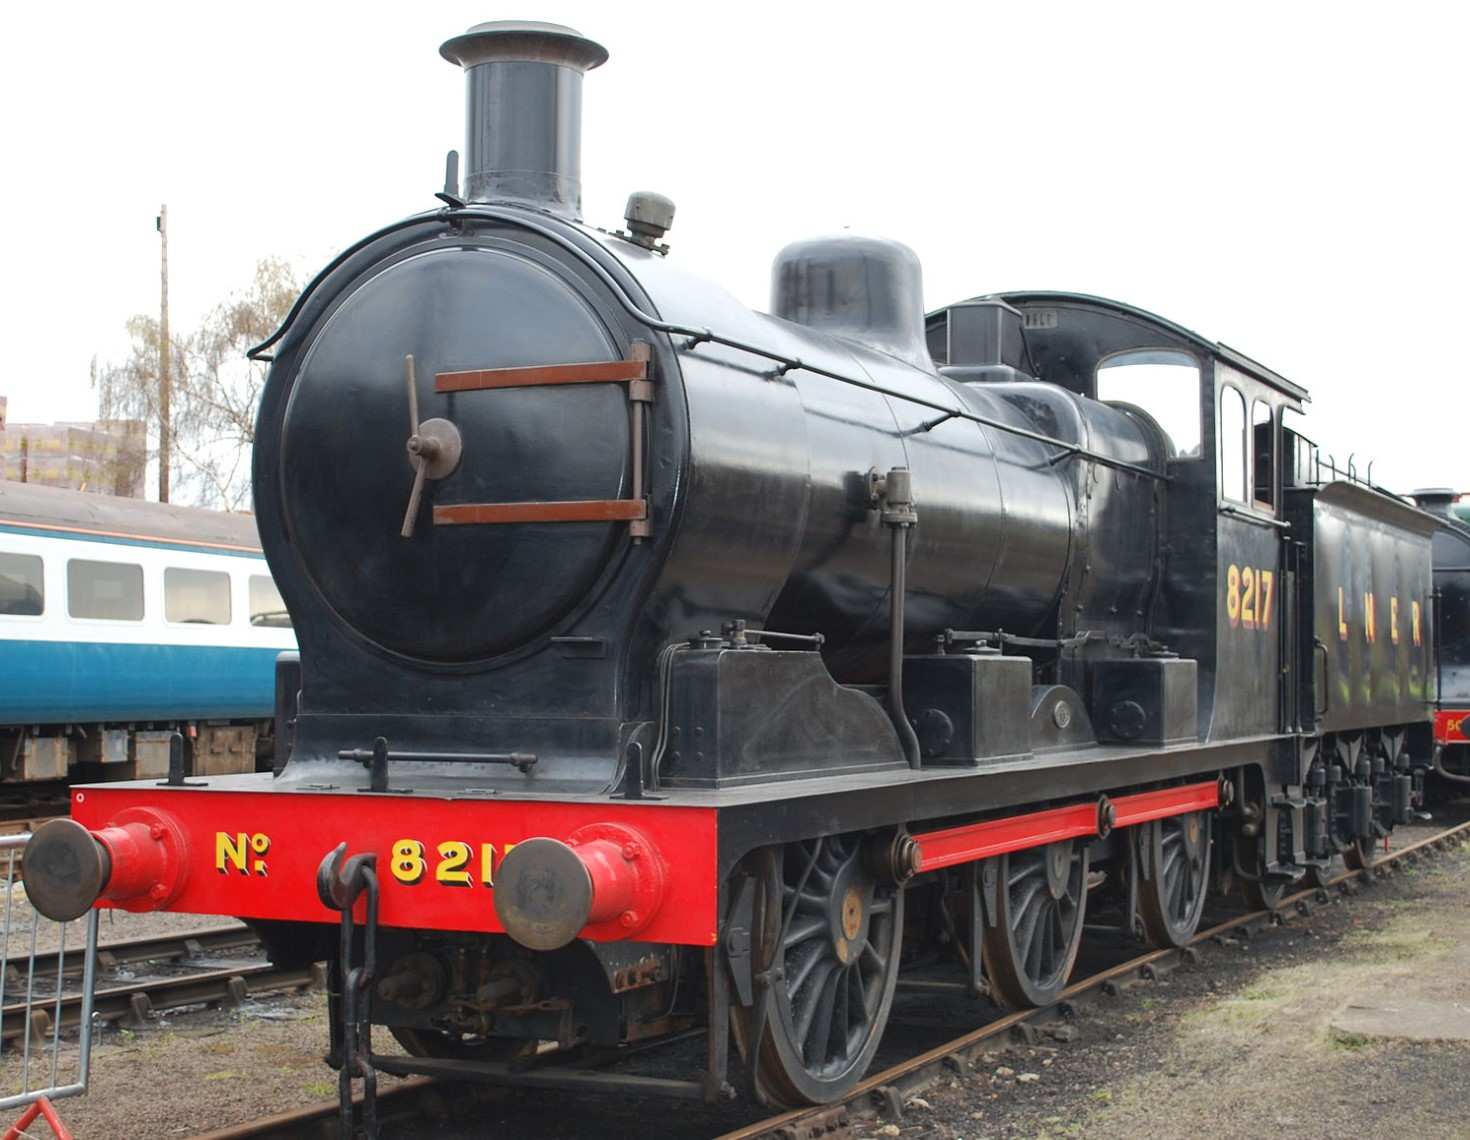 8217 at Barrow Hill Roundhouse in April 2012. ©Hugh Llewelyn